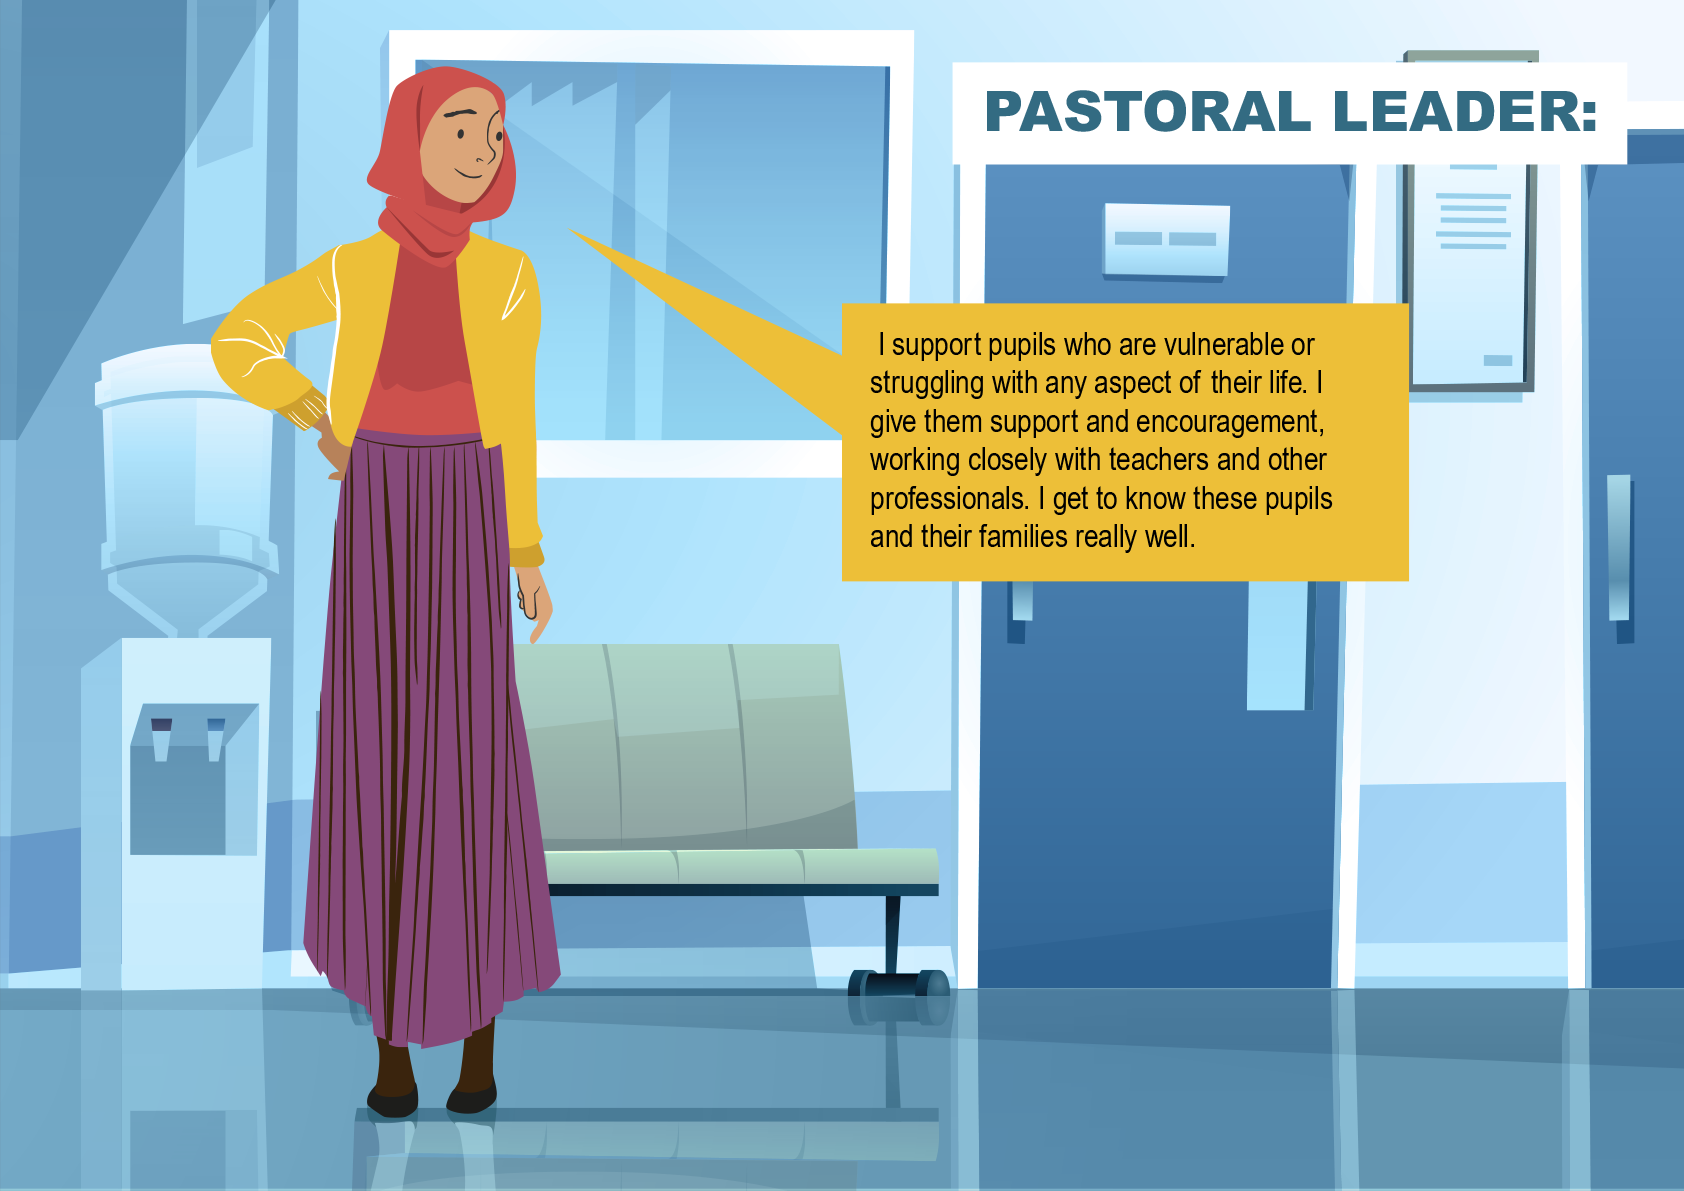 The Pastoral leader is standing next to a sofa and a water-cooler